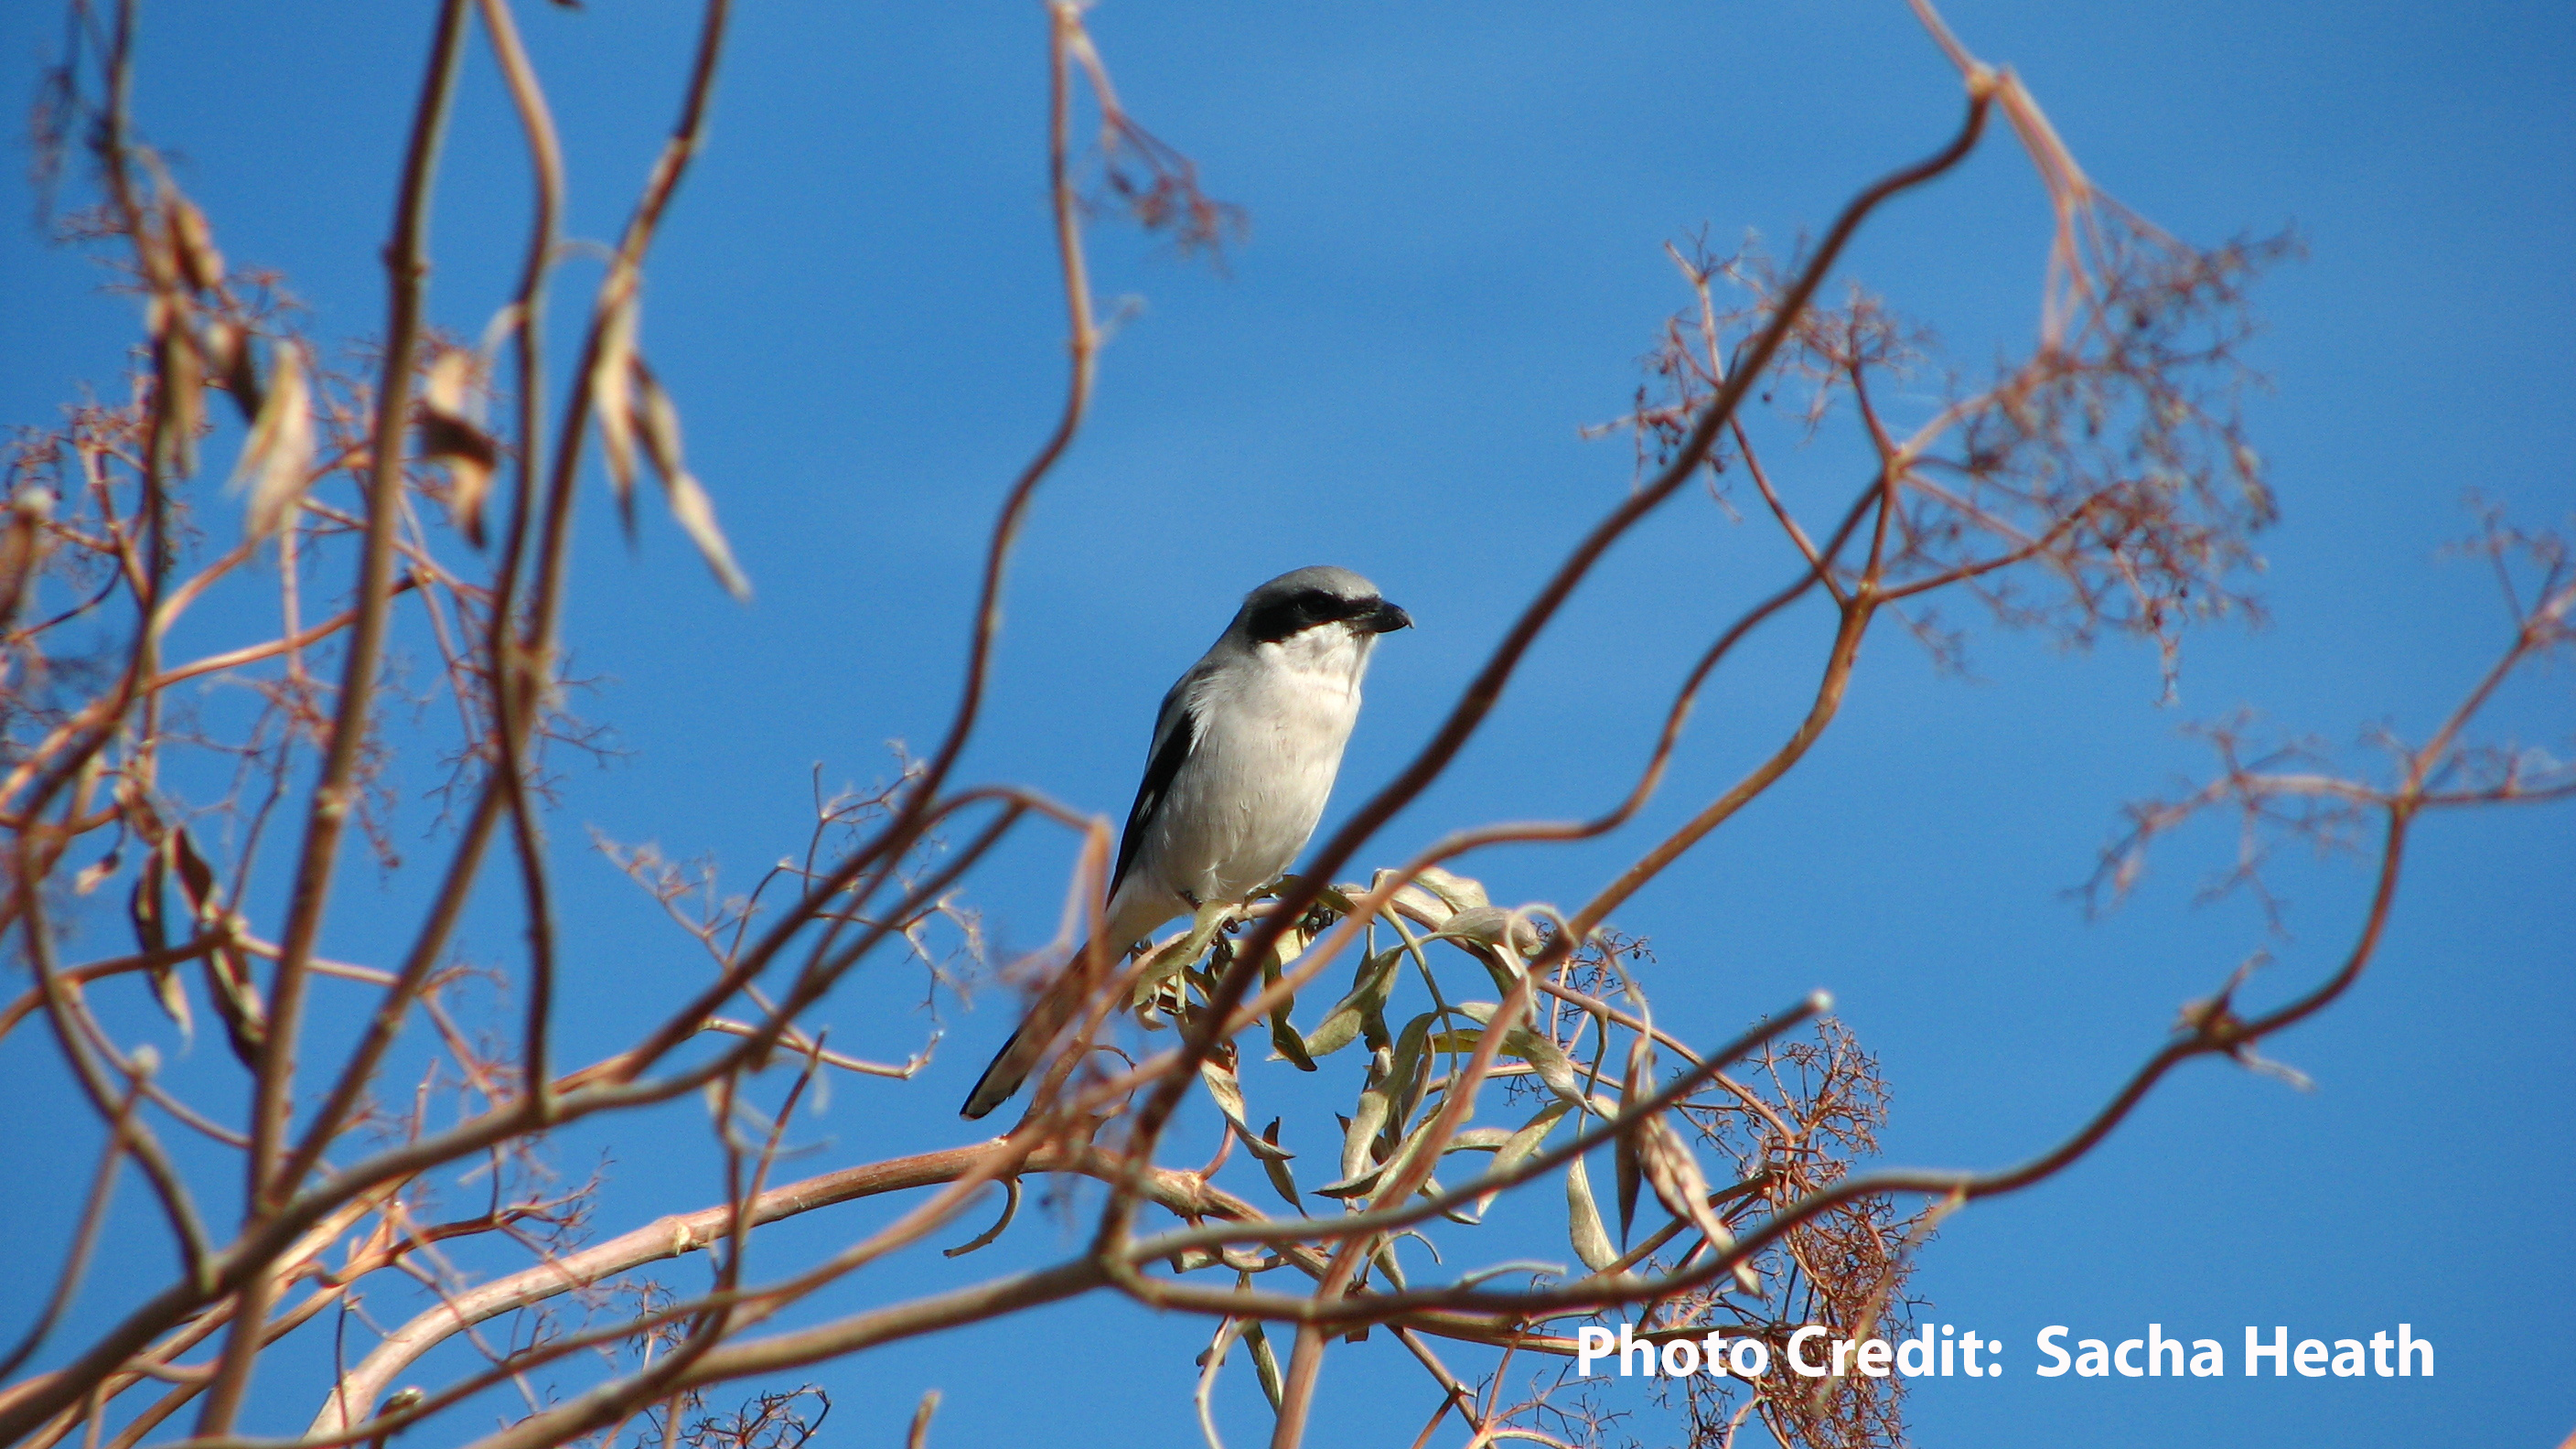 Loggerhead_Shrike_(Lanius_ludovicianus)__Rominger__Yolo_County__California__USA__13_November_2012__Sacha_Heath_copy.jpg